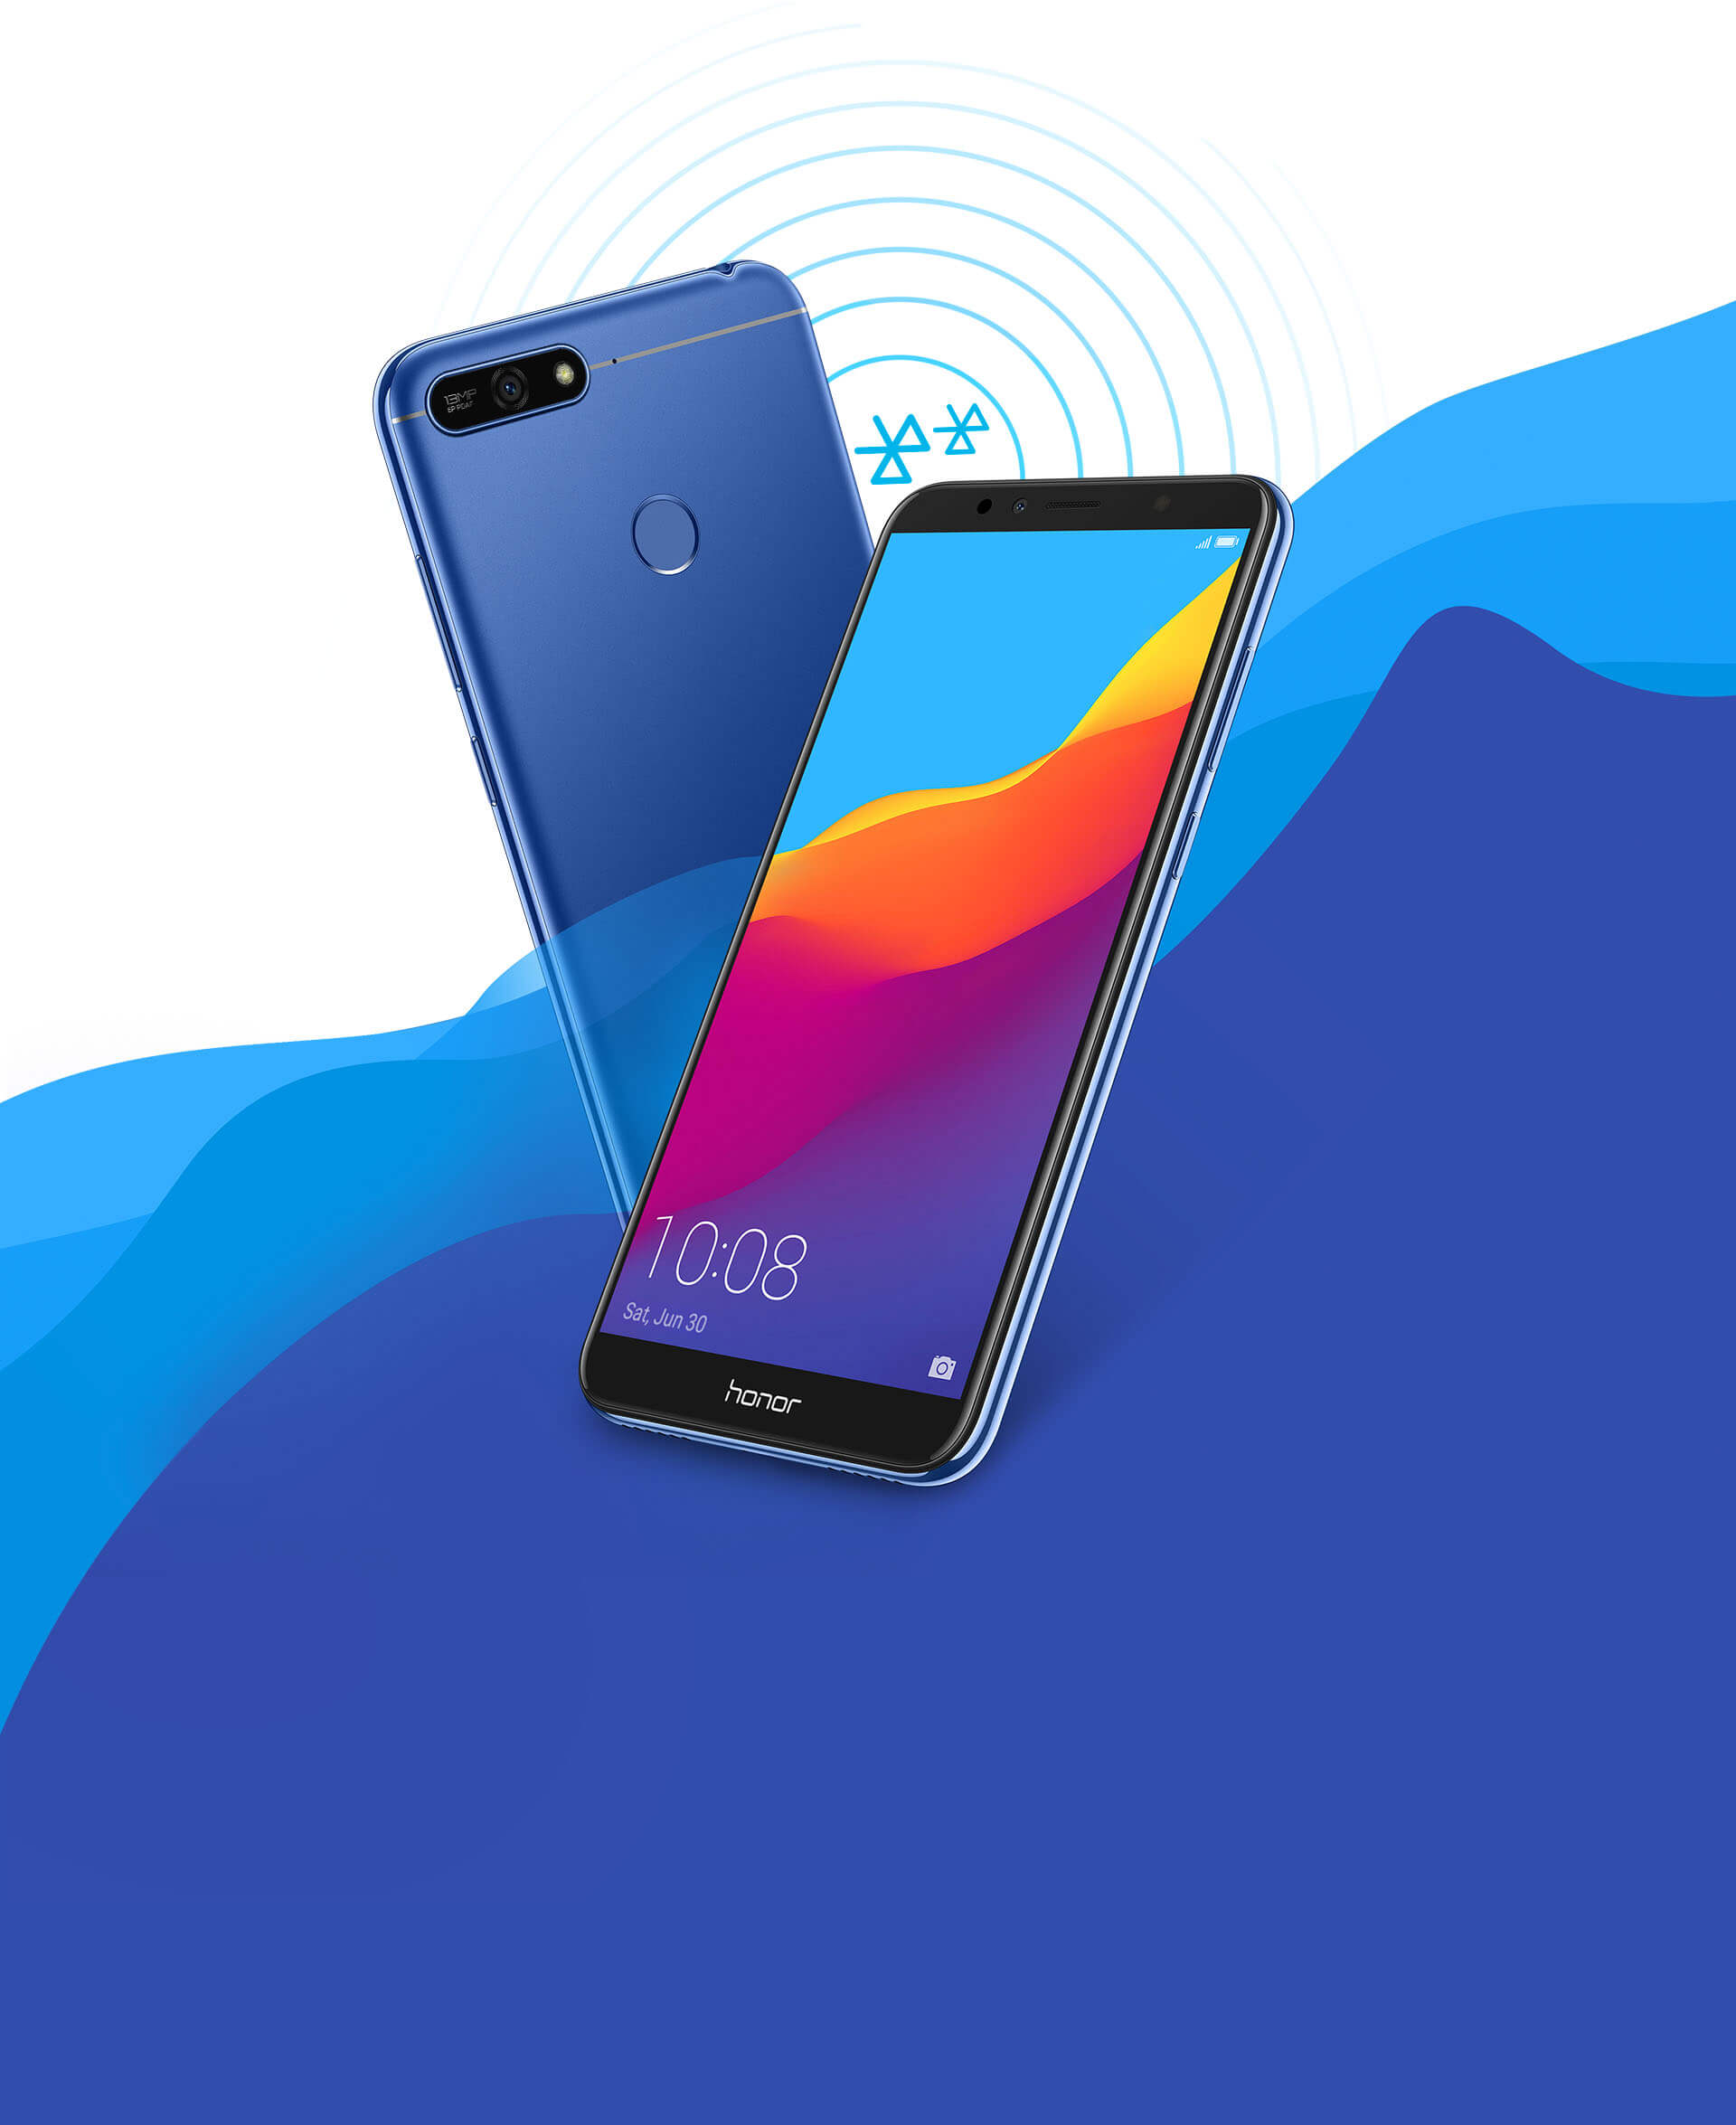 Buy Honor 7a Face Unlock Mobile Phone Official Site Global Using Bluetooth Cellular And Bt Serial Electronic Design The Dual Feature Allows To Connect With Two Devices Via At Same Time Allowing You Listen Music While Talking On A